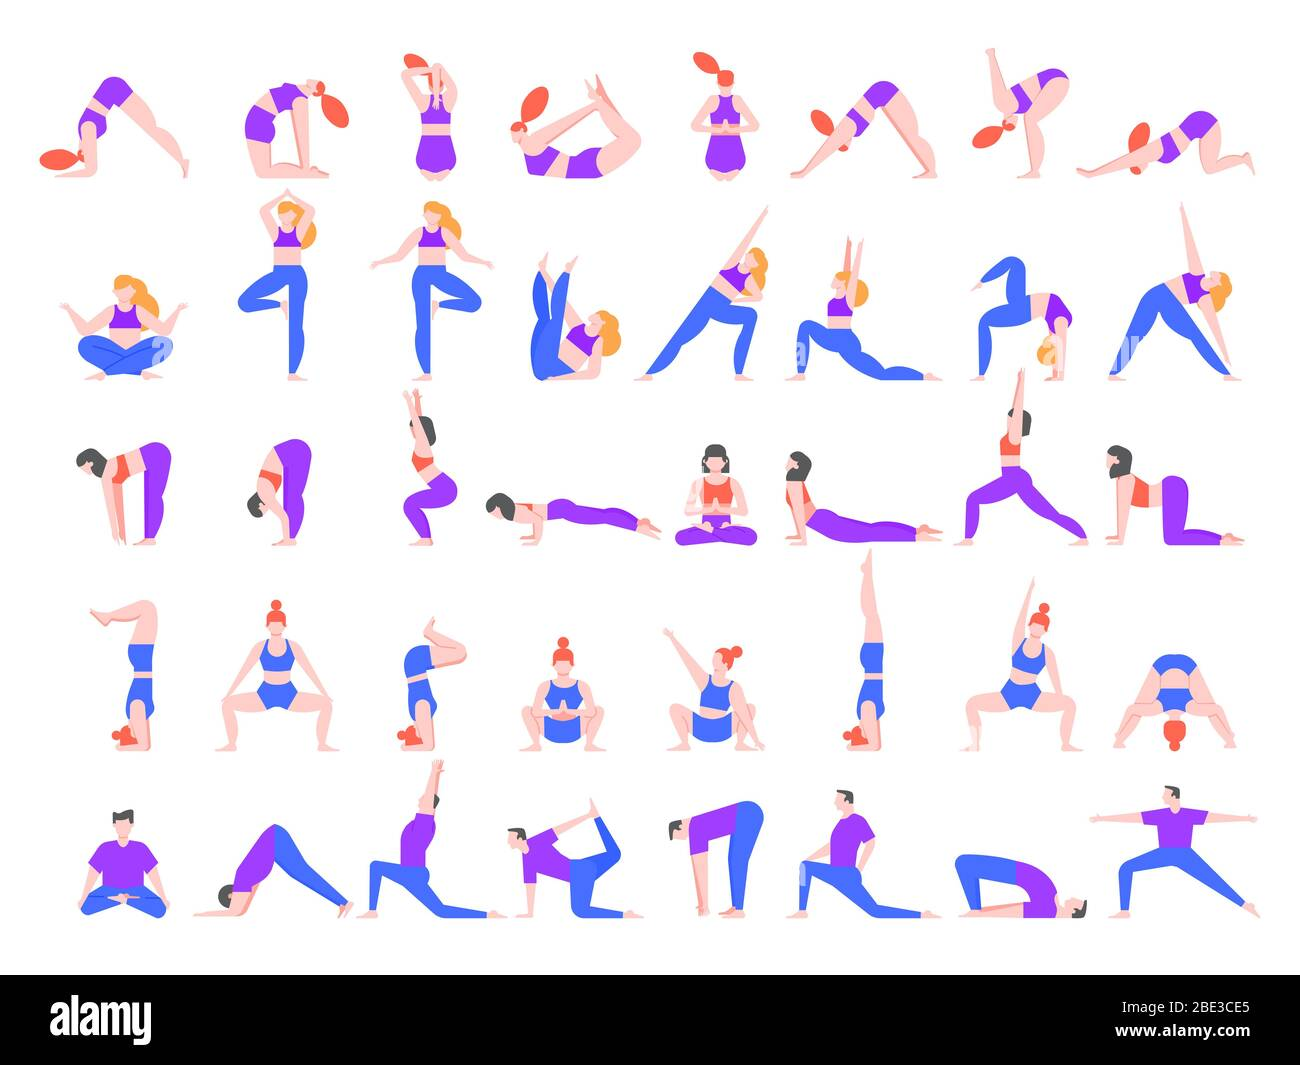 Yoga Asanas Practice In Yoga Poses Young People Train Balance Meditate And Relax At Yoga Class Vector Illustration People Characters Practicing Stock Vector Image Art Alamy